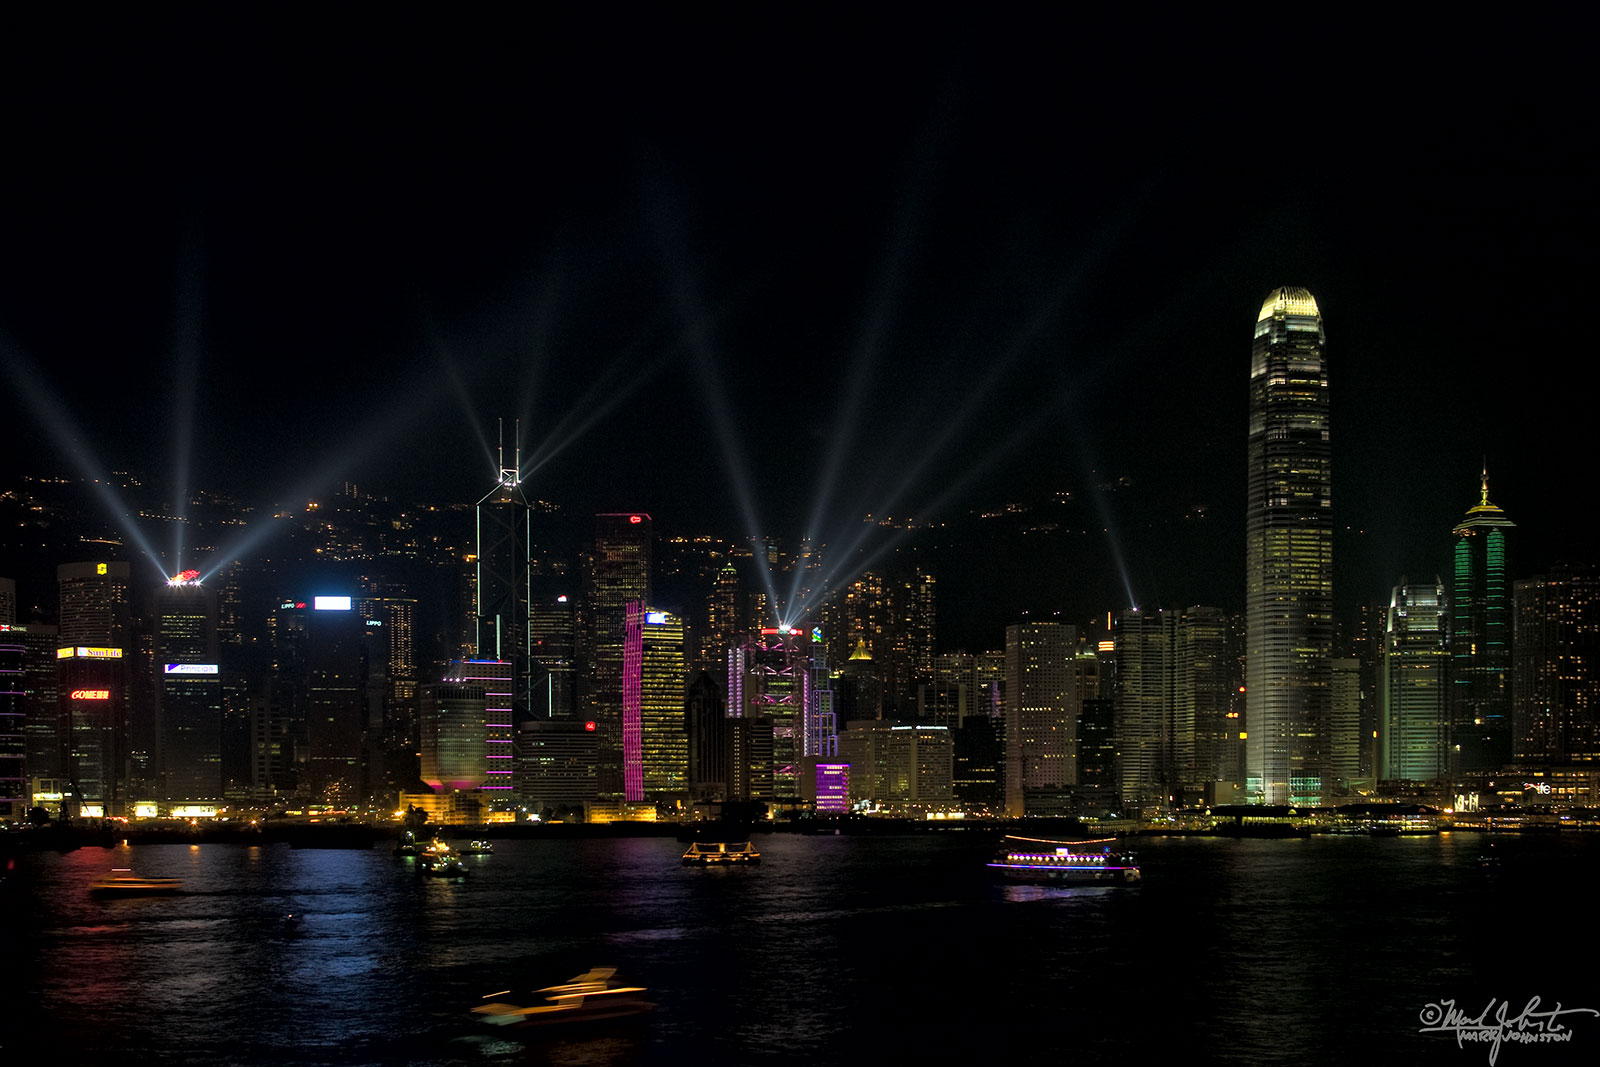 Looking across Victoria Harbor at Hong Kong from the Kowloon side.